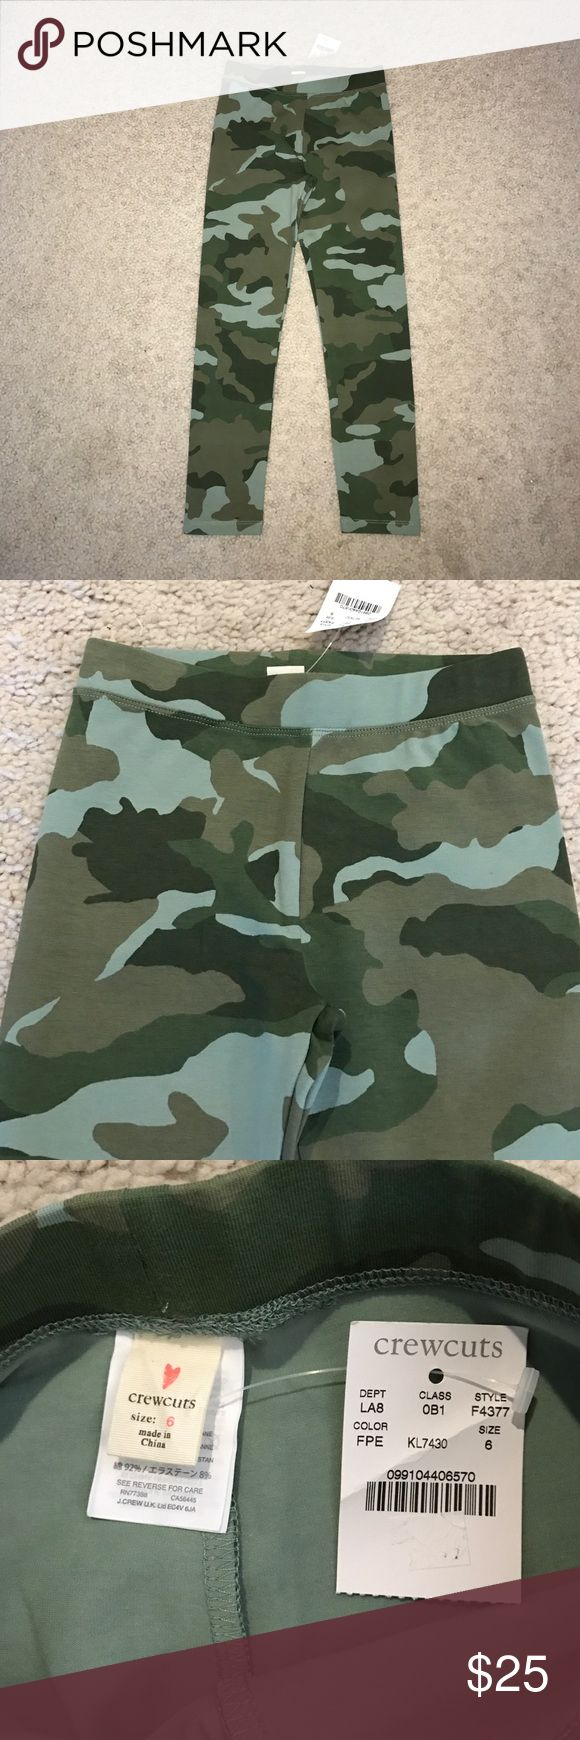 J. Crew Crewcuts camo camouflage leggings pants 6 This is a pair of green camo camouflage leggings pants from the J. Crew Crewcuts children's clothing line in girls size 6. They are brand new with tags. Thanks for looking!!!! J. Crew Bottoms Leggings